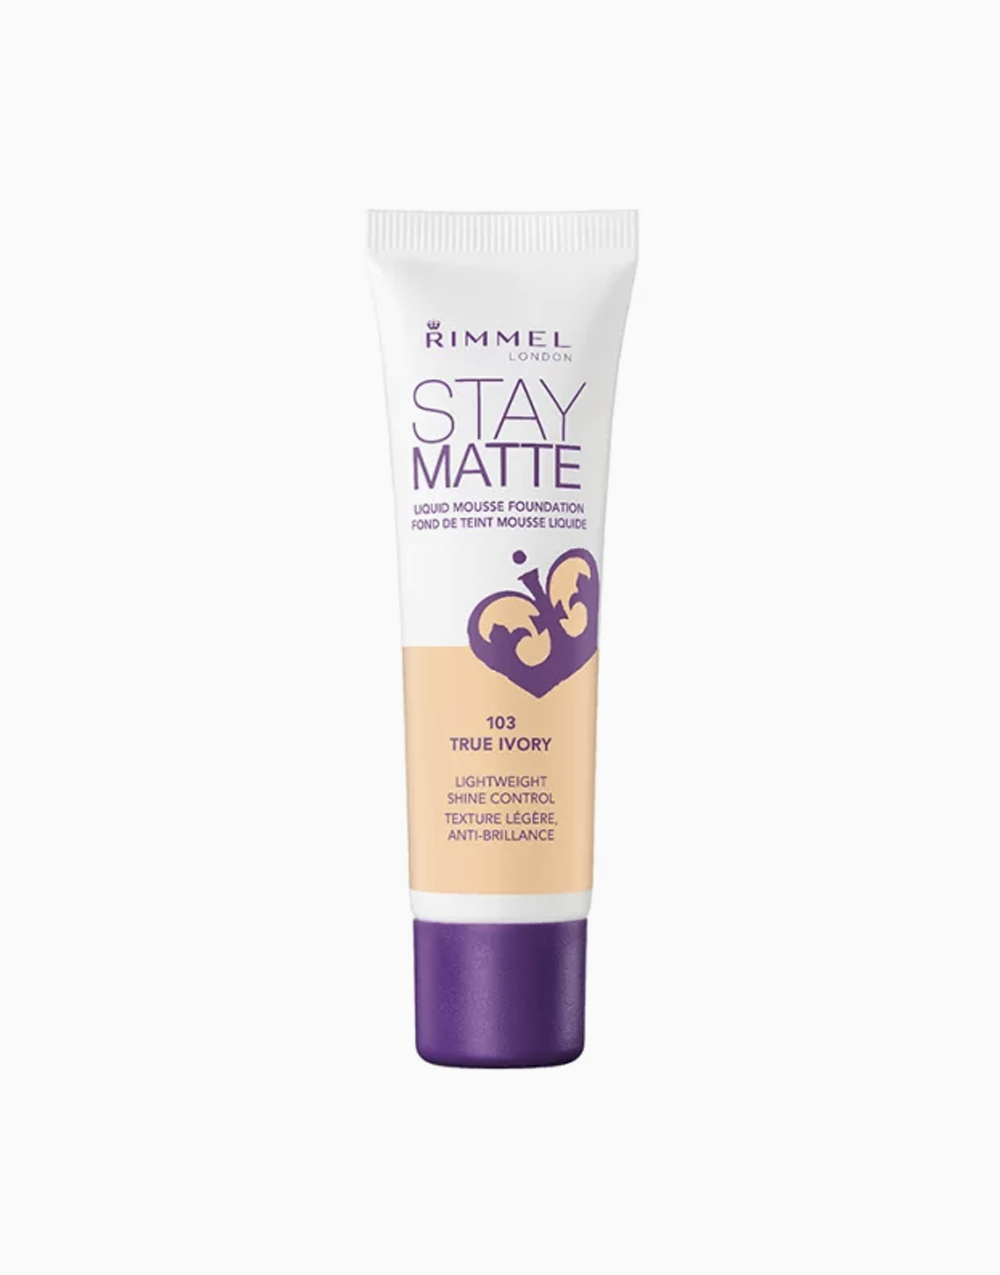 Stay Matte Mousse Foundation by Rimmel | True Ivory